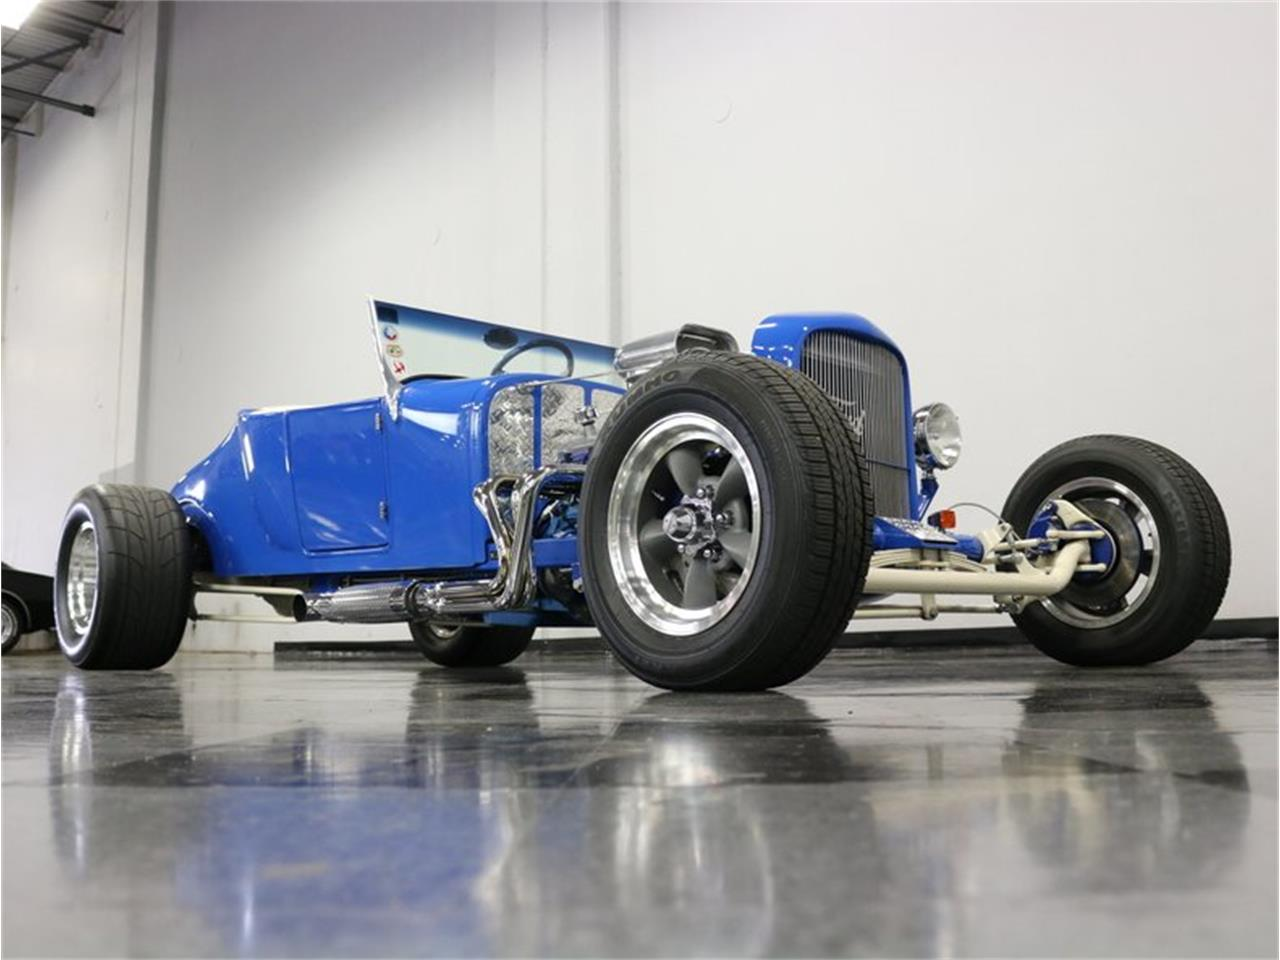 Large Picture of '27 Ford Model T - $29,995.00 Offered by Streetside Classics - Dallas / Fort Worth - MAZM